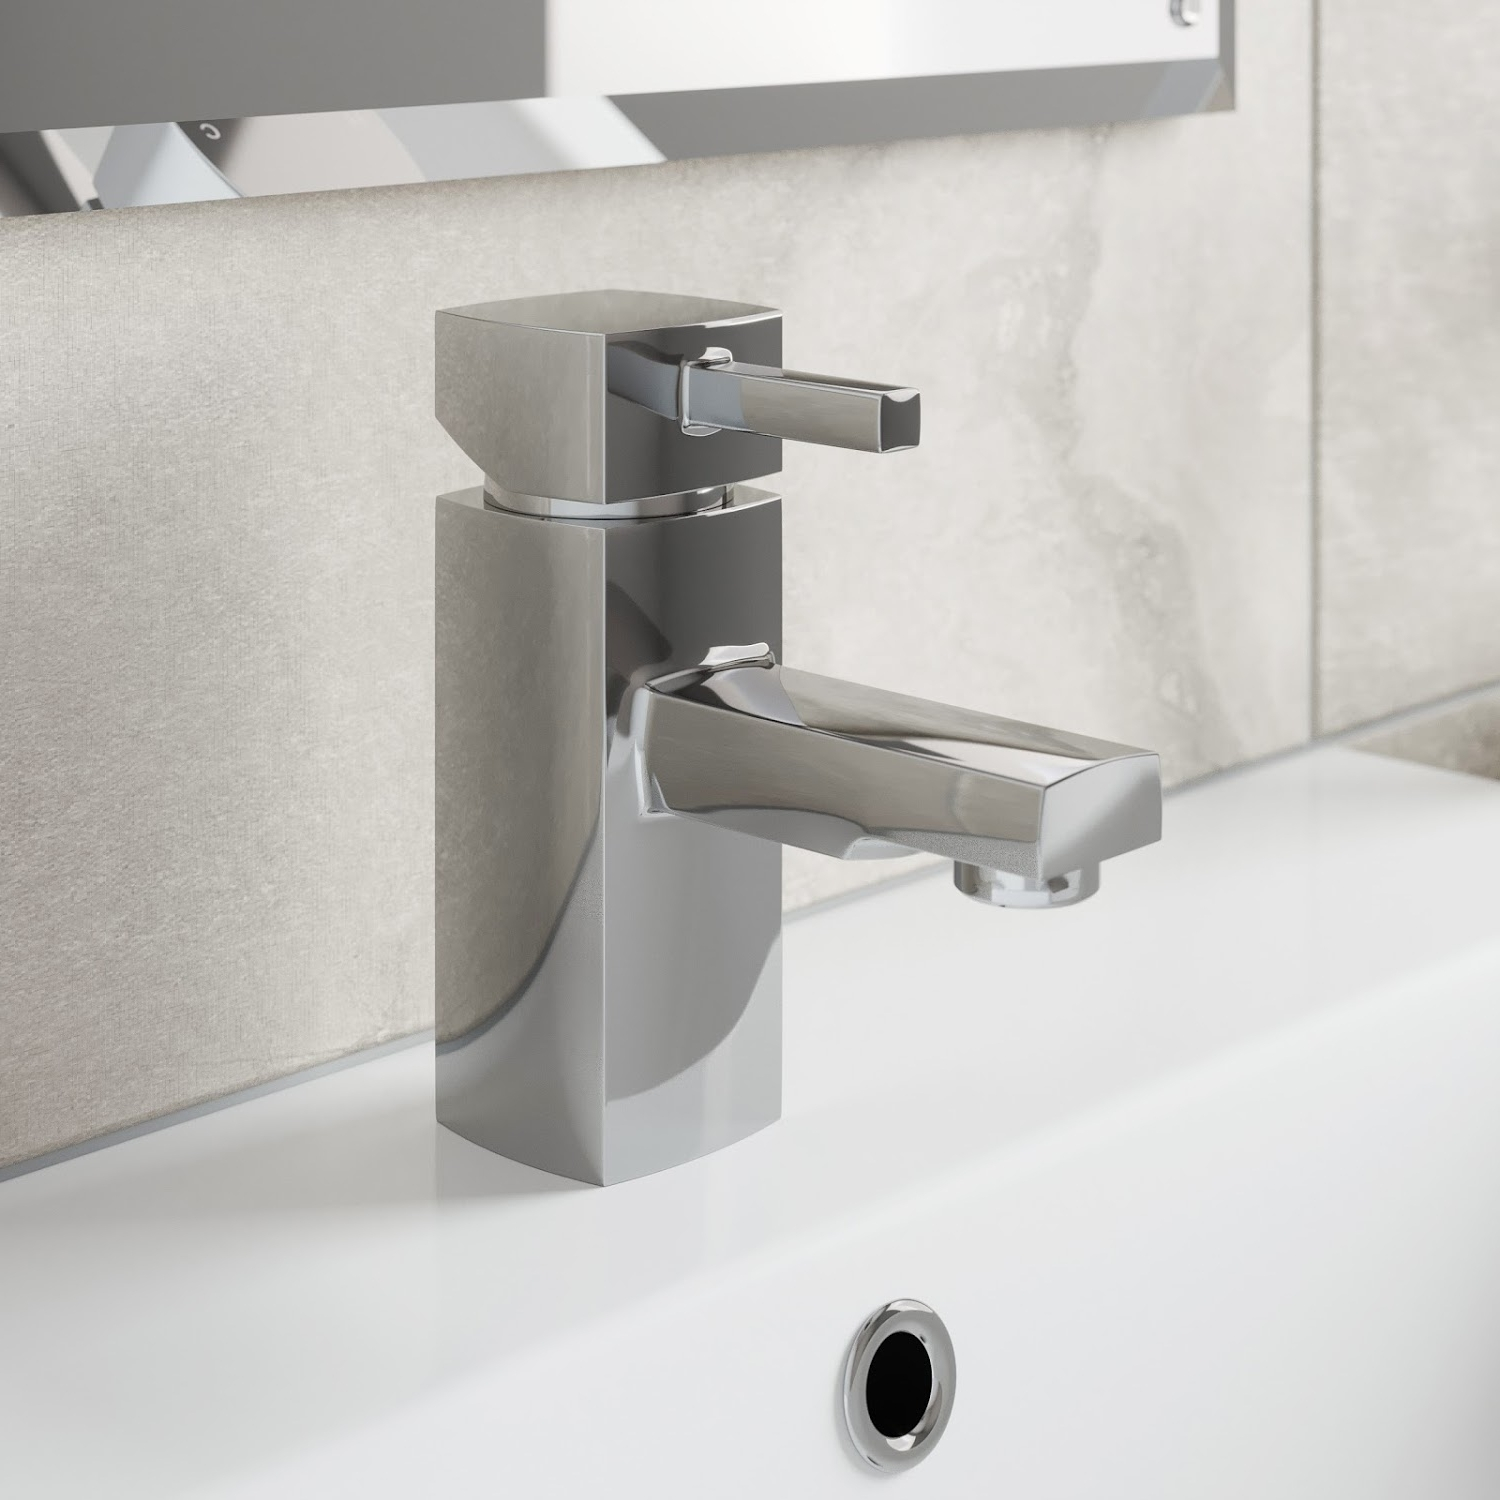 Details About Modern Bathroom Mono Basin Sink Mixer Tap Square Chrome Lever Handle Cloakroom 10+ Cloakroom Bathroom Inspirations